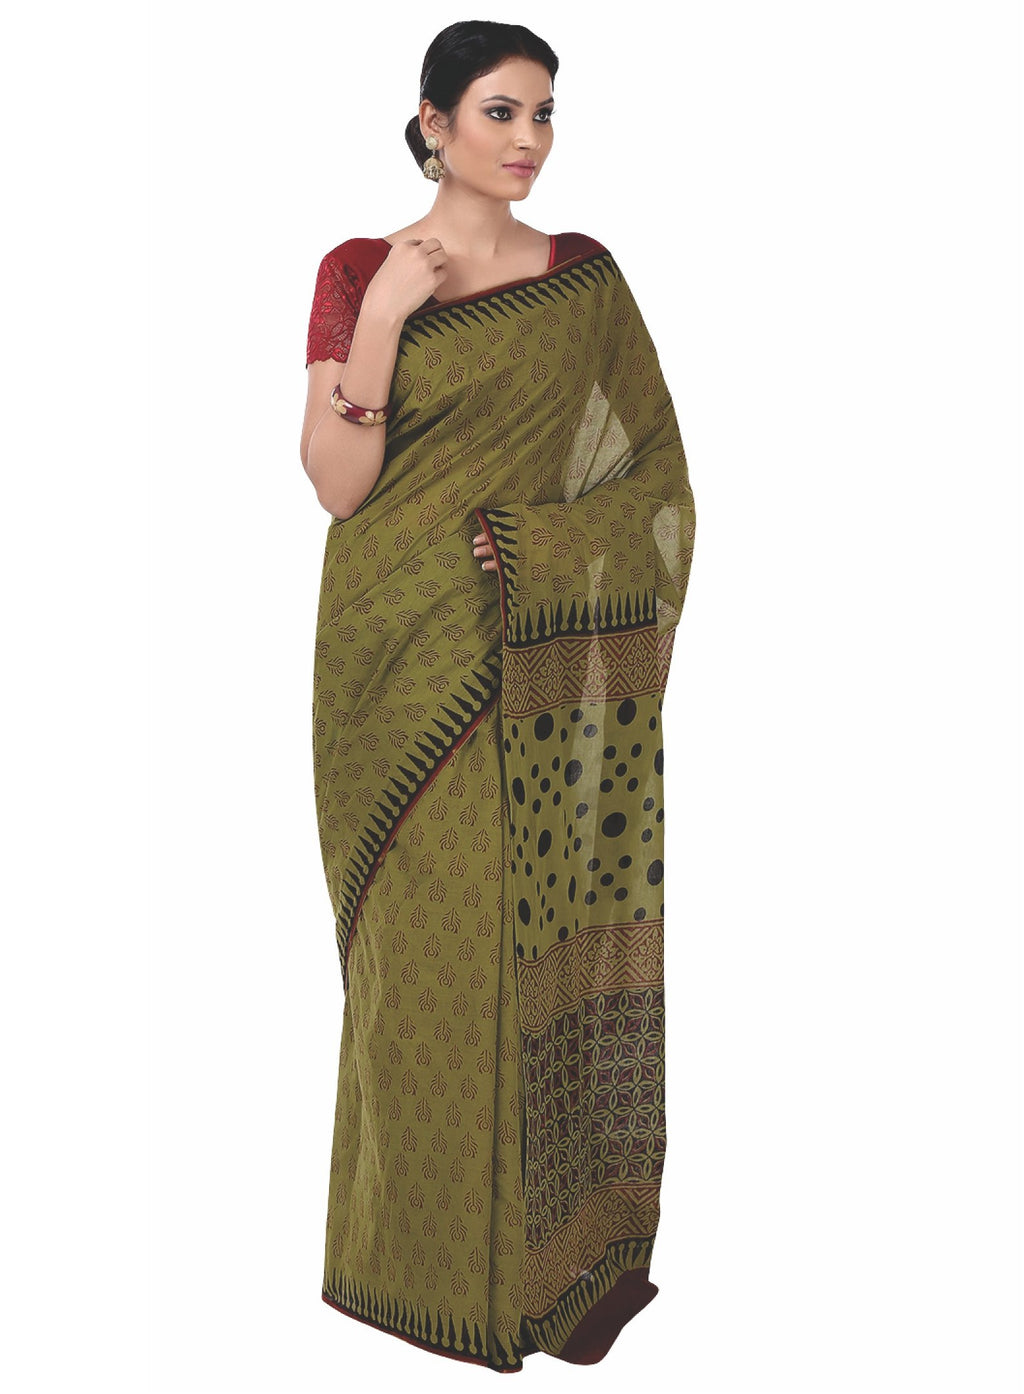 Olive Green Bagh Hand Block Print Handcrafted Cotton Saree-Saree-Kalakari India-BAPASA0046-Bagh, Cotton, Geographical Indication, Hand Blocks, Hand Crafted, Heritage Prints, Sarees, Sustainable Fabrics-[Linen,Ethnic,wear,Fashionista,Handloom,Handicraft,Indigo,blockprint,block,print,Cotton,Chanderi,Blue, latest,classy,party,bollywood,trendy,summer,style,traditional,formal,elegant,unique,style,hand,block,print, dabu,booti,gift,present,glamorous,affordable,collectible,Sari,Saree,printed, holi, Diwa